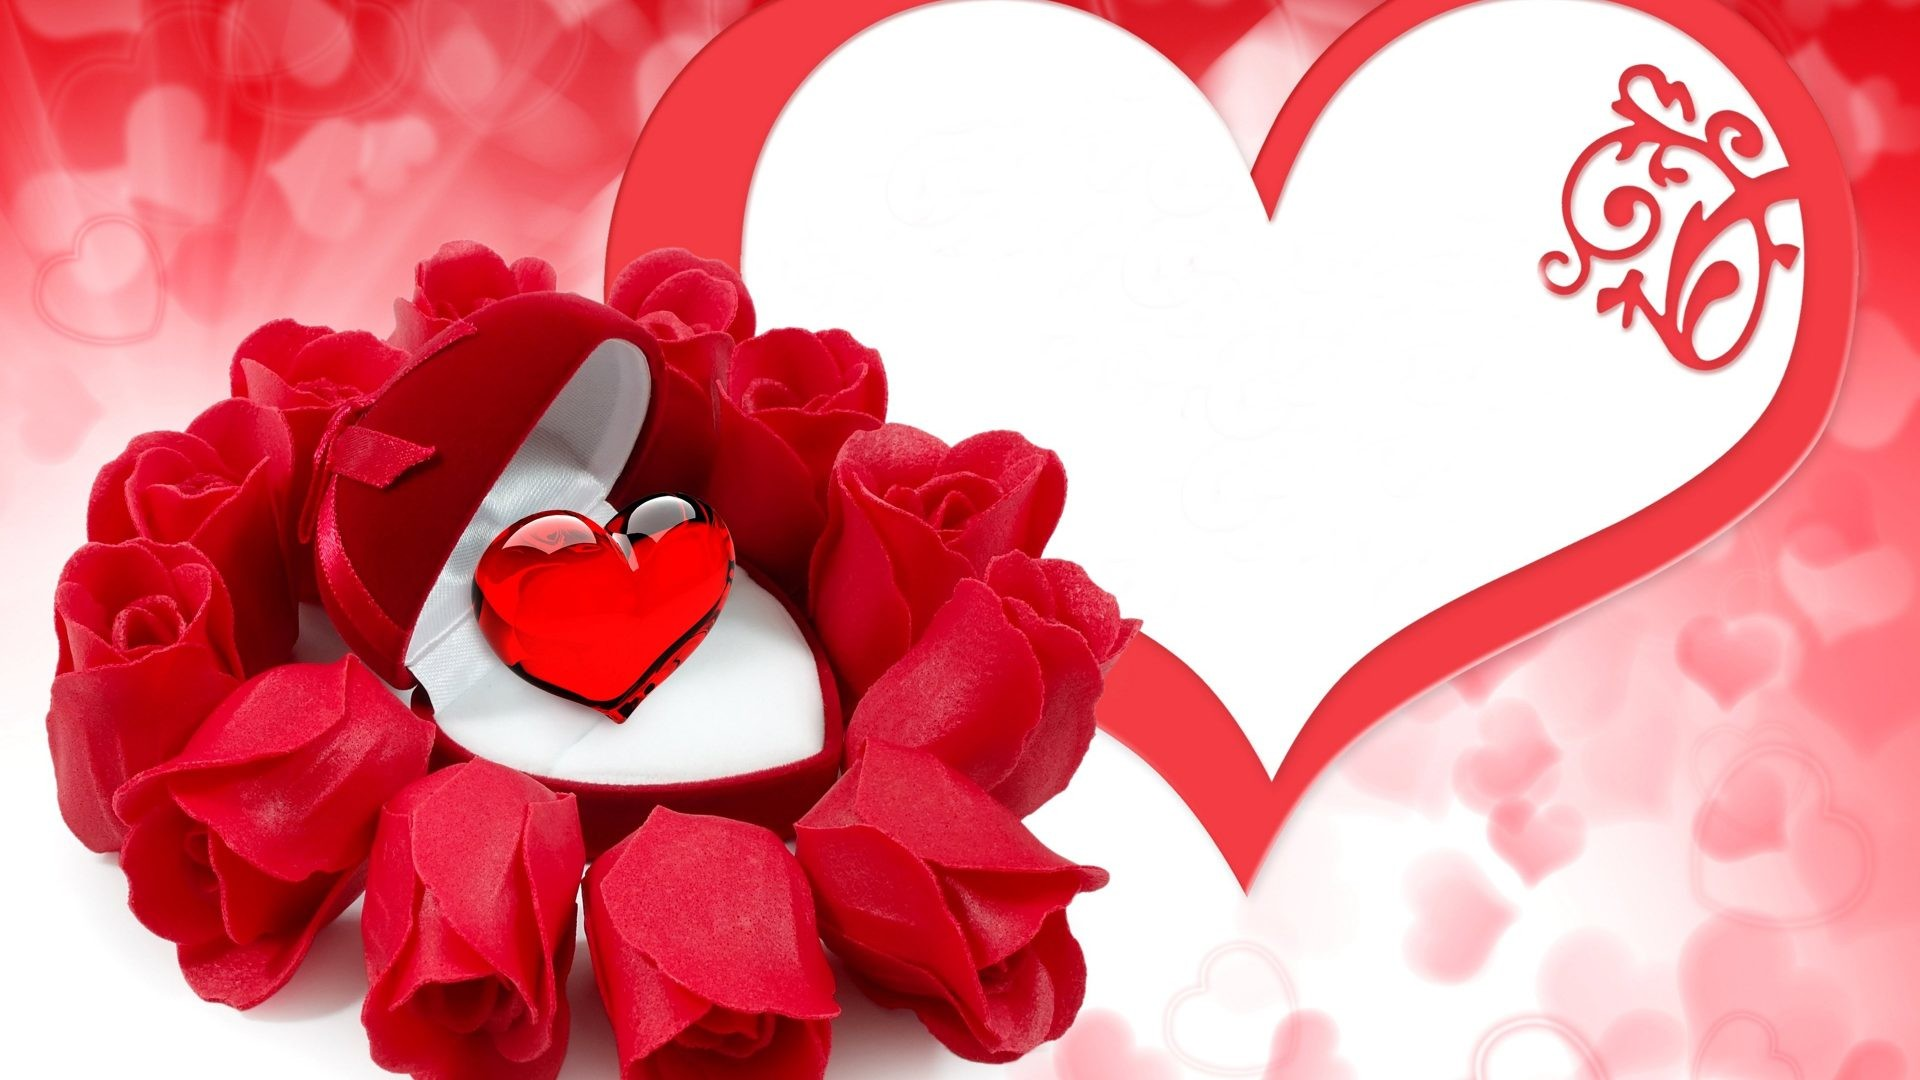 1920x1080 #EECCCC Color - Couple Red Hearts Flowers Bouquet Gift Romance Love Life  Rose Nature Scene